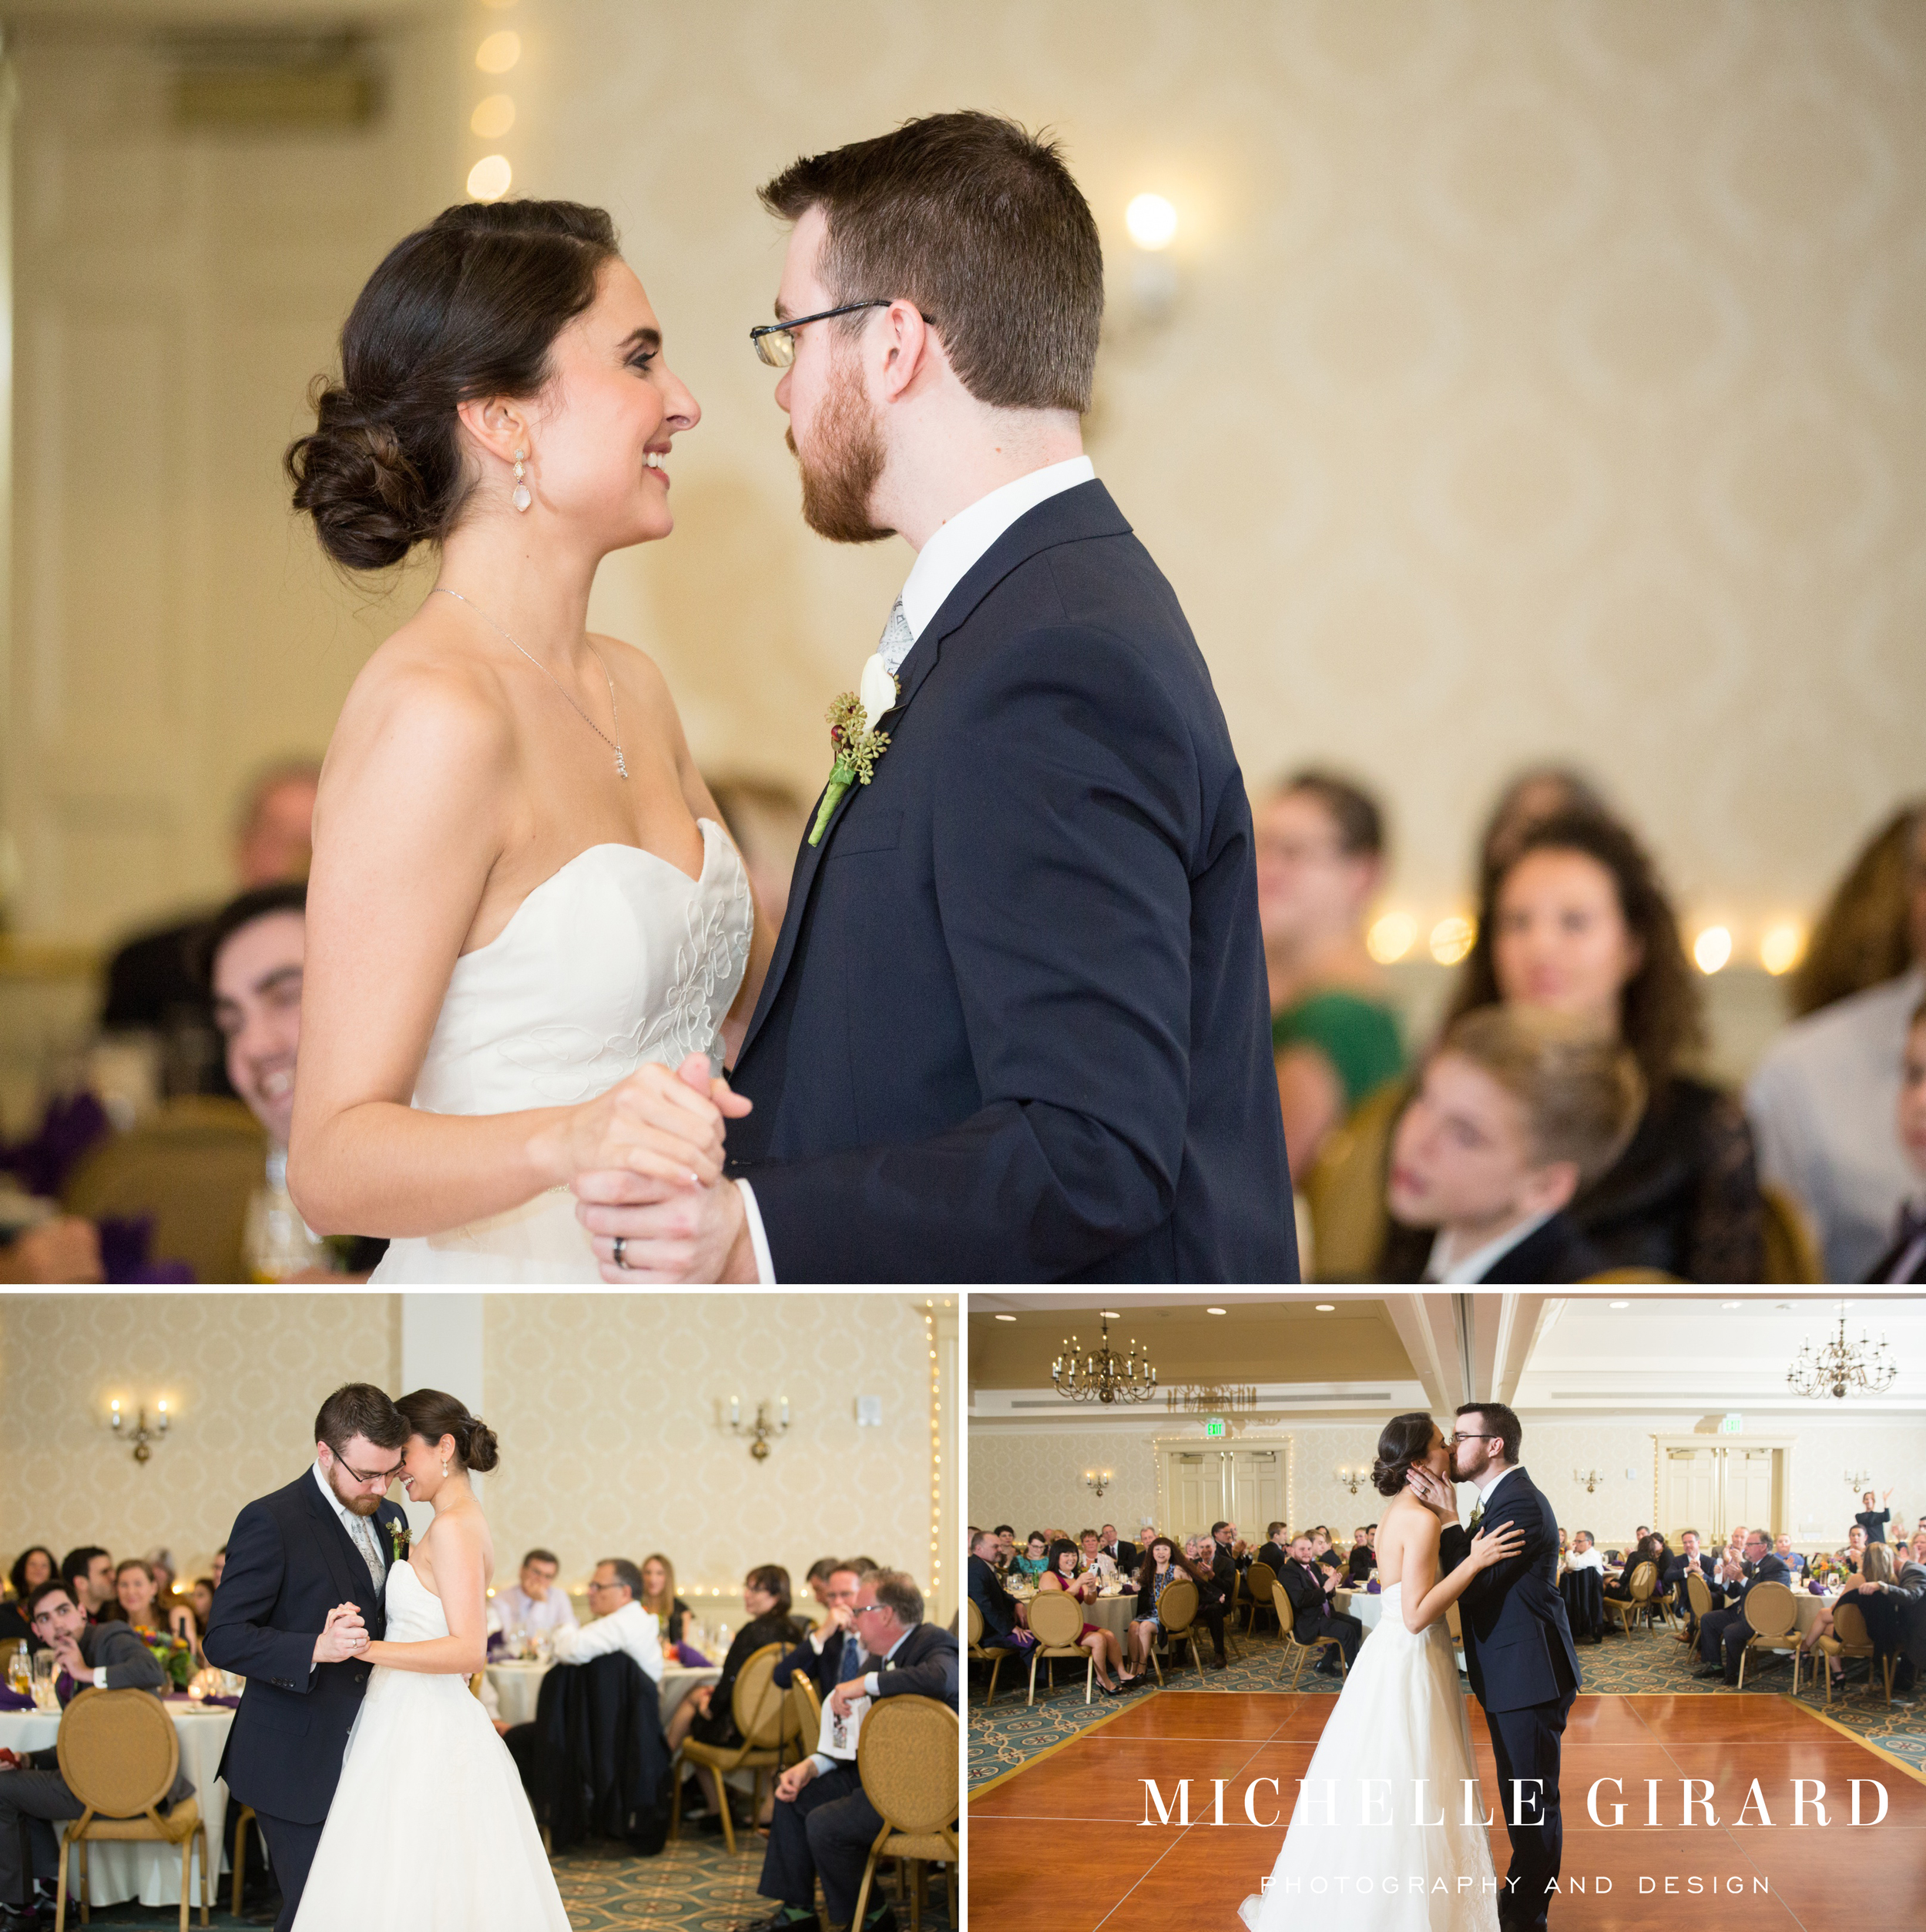 LordJefferyInnWedding_AmherstMa_MichelleGirardPhotography39.jpg